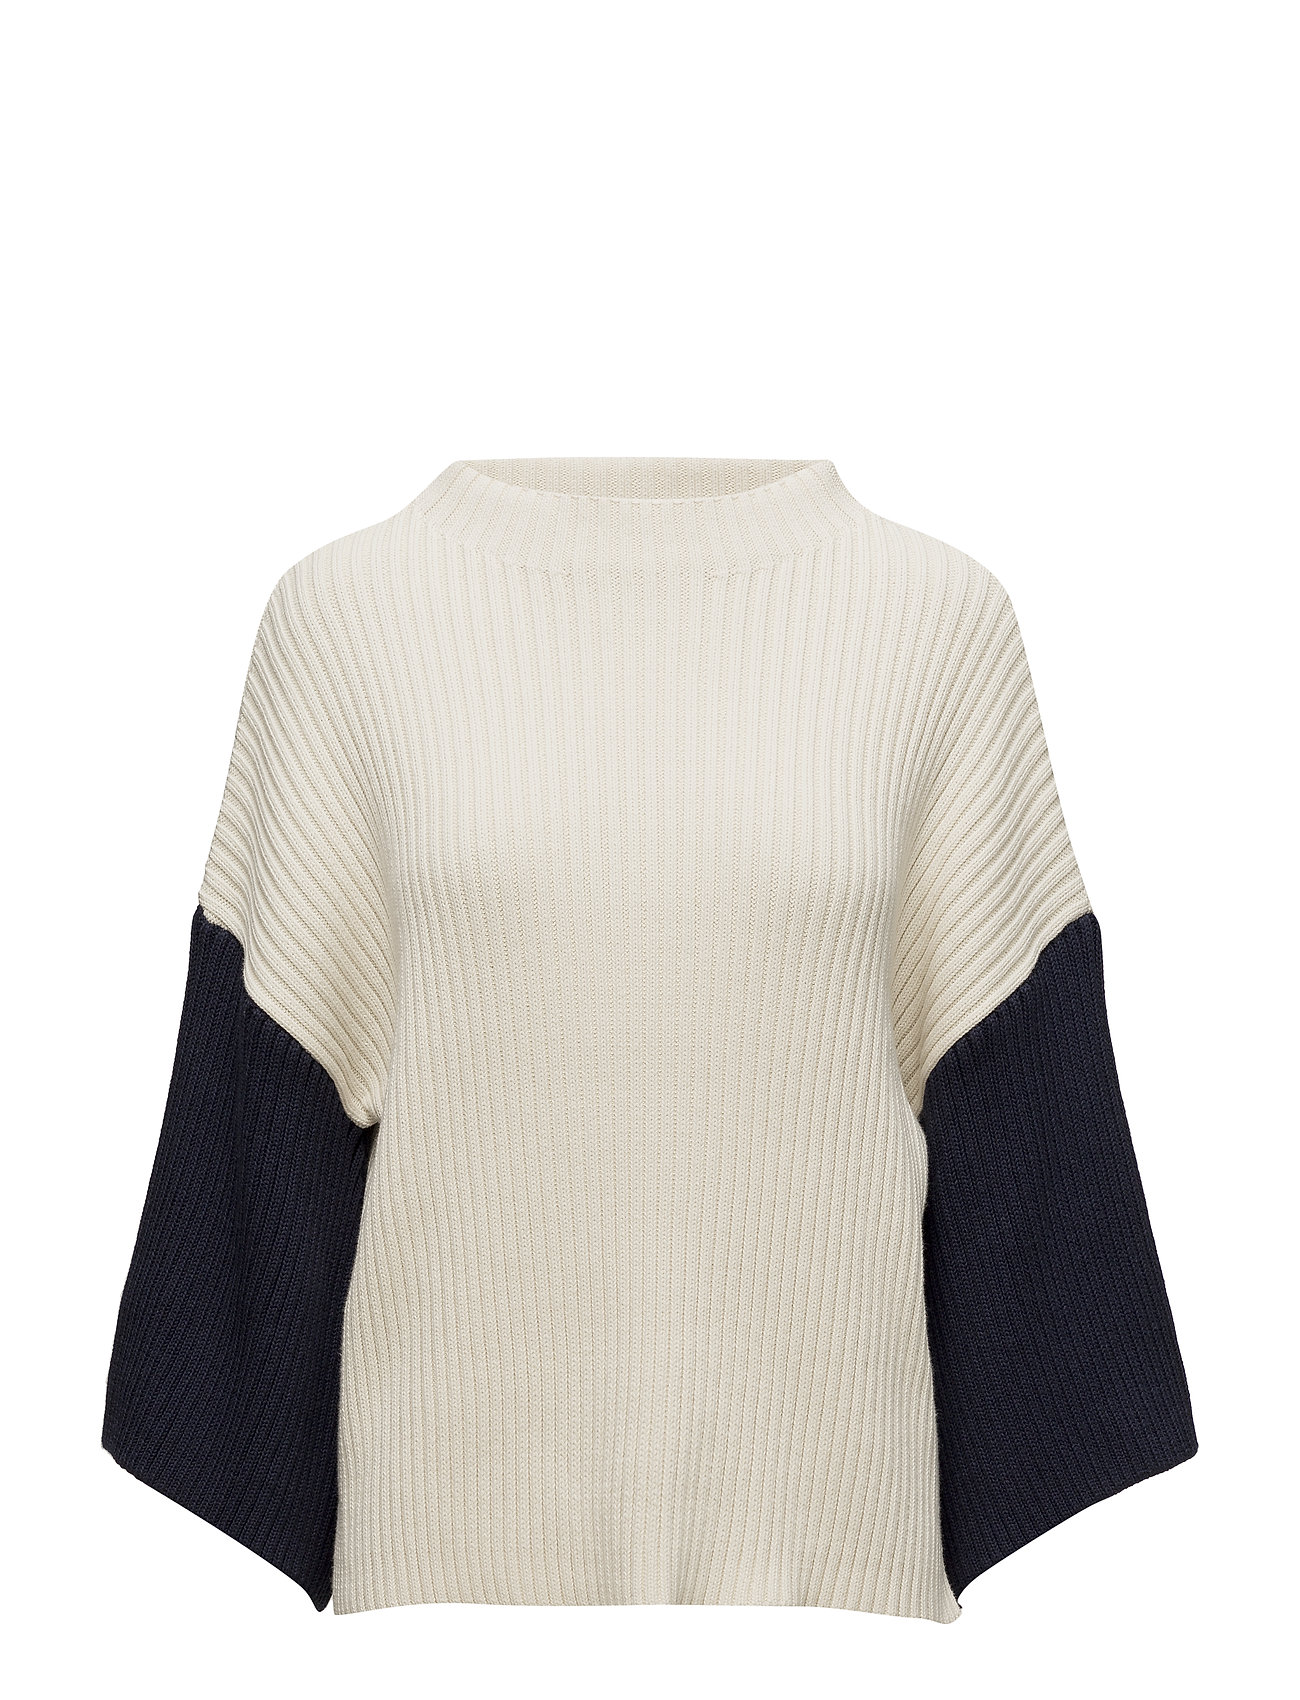 GANT Rugger R1. RIBBED KNIT SLEEVE